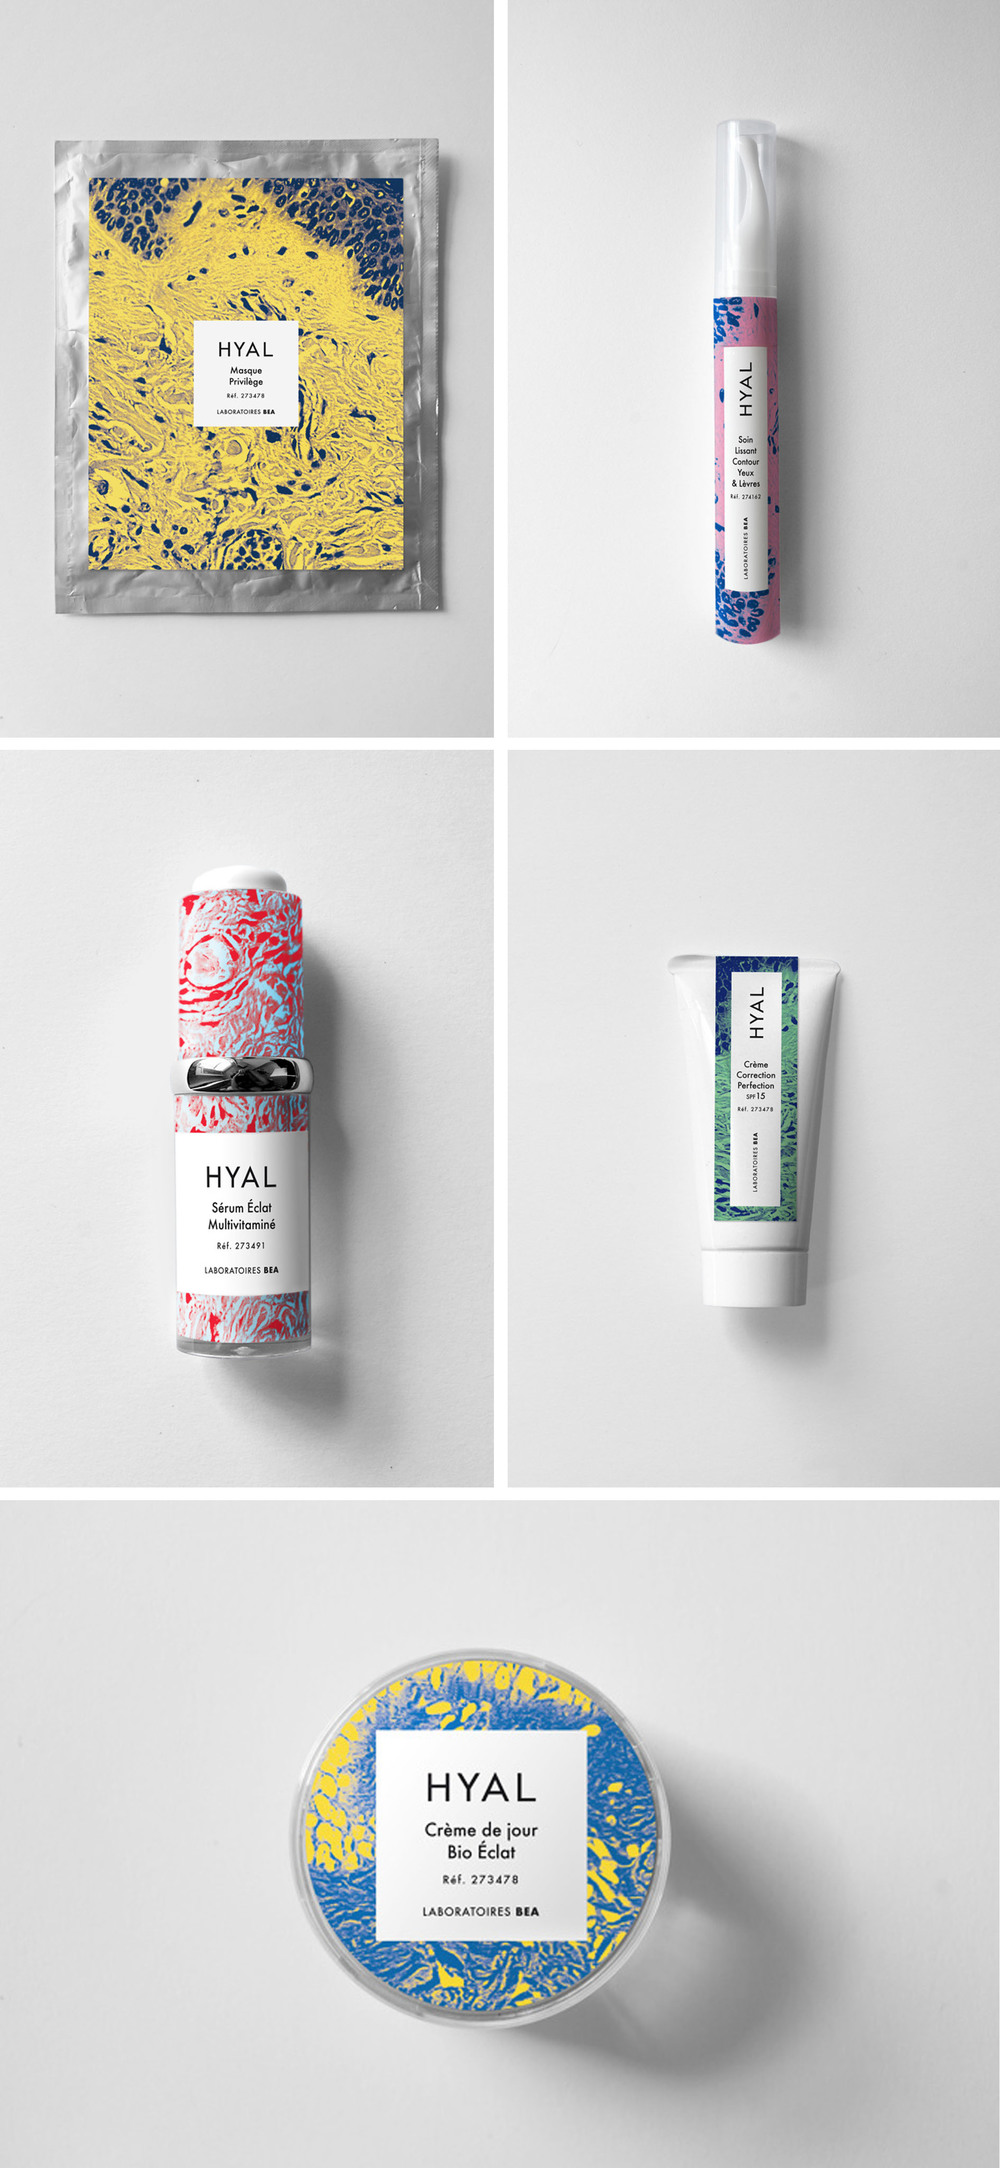 Hyal packaging design